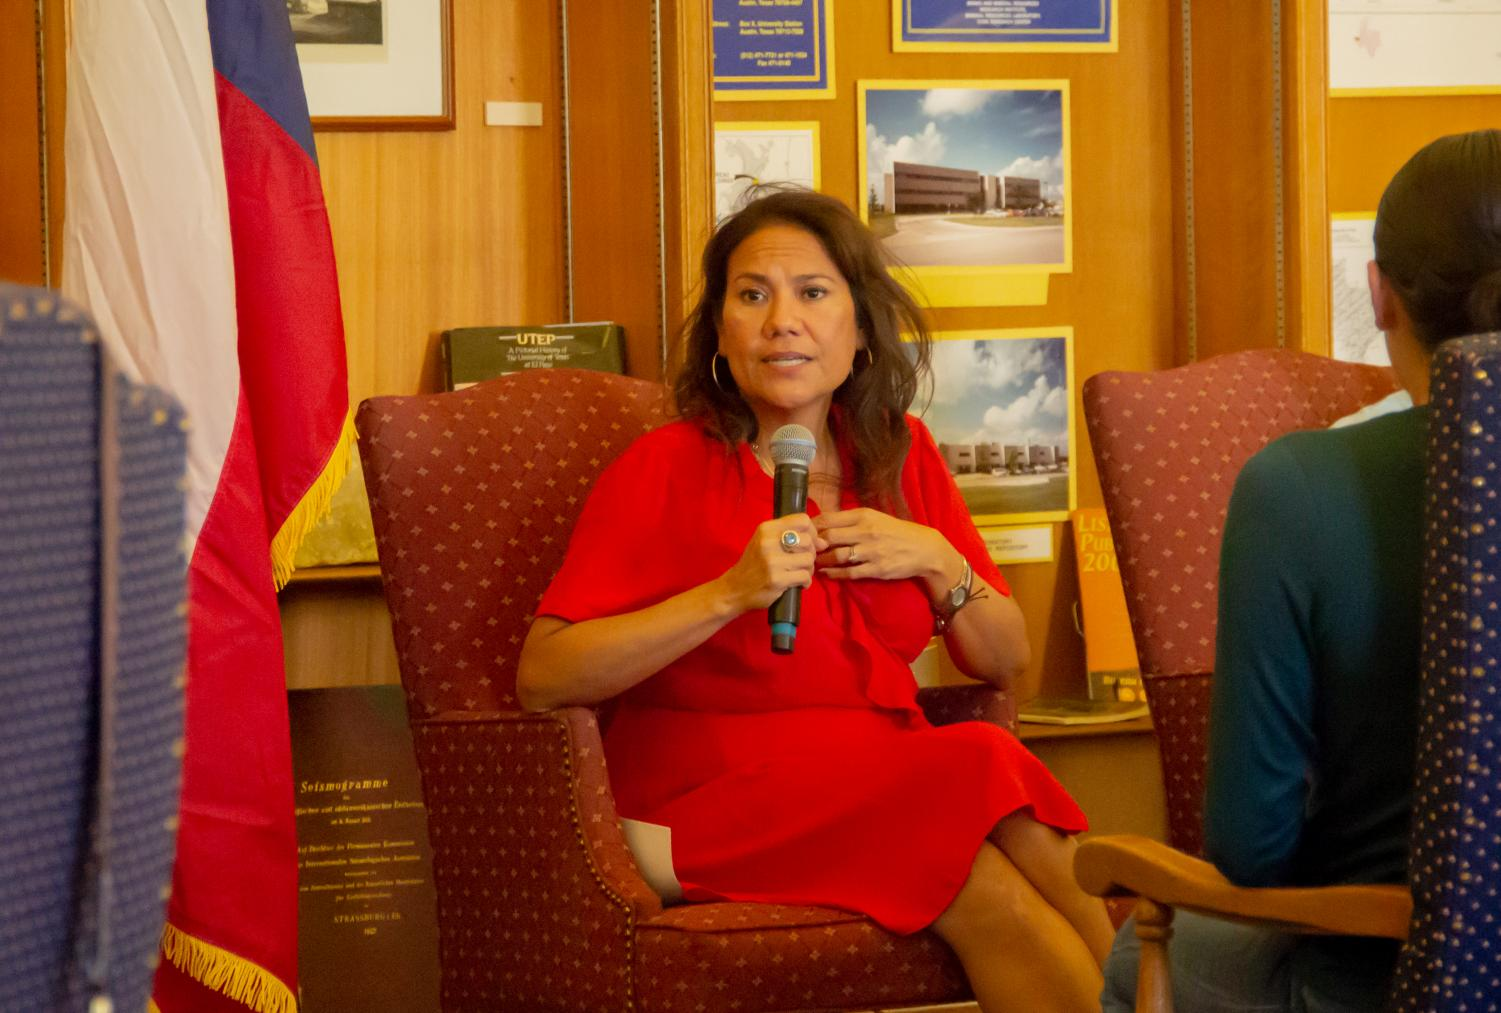 Congress representative of District 16 Veronica Escobar was invited by SGA to talk about the community and education on Oct, 7.